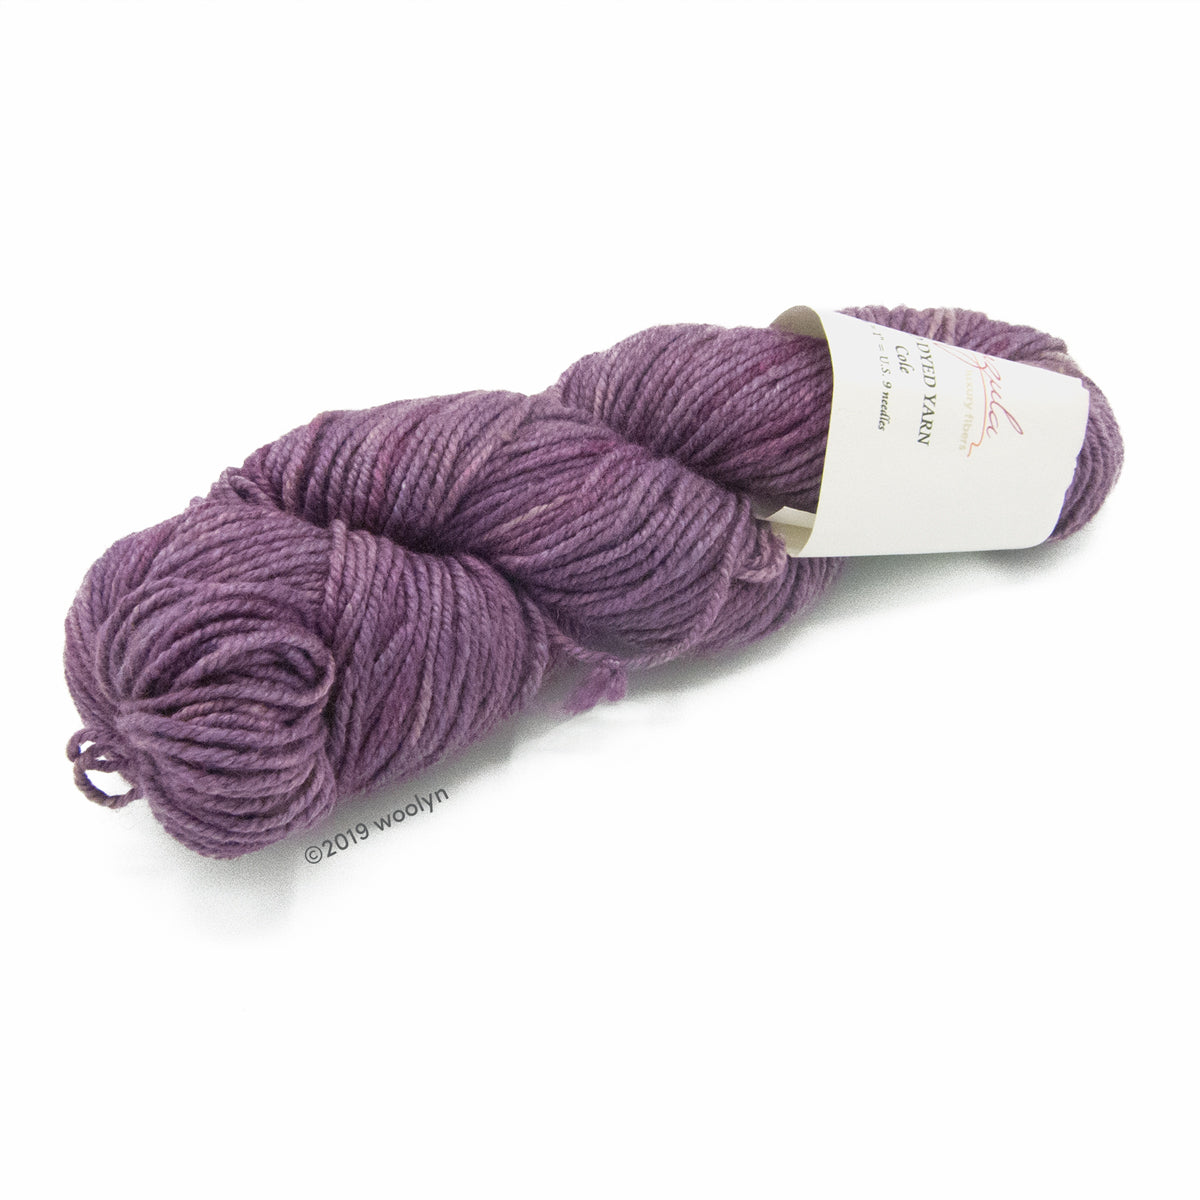 A twisted skein of Anzula Cole yarn in a dark purple.